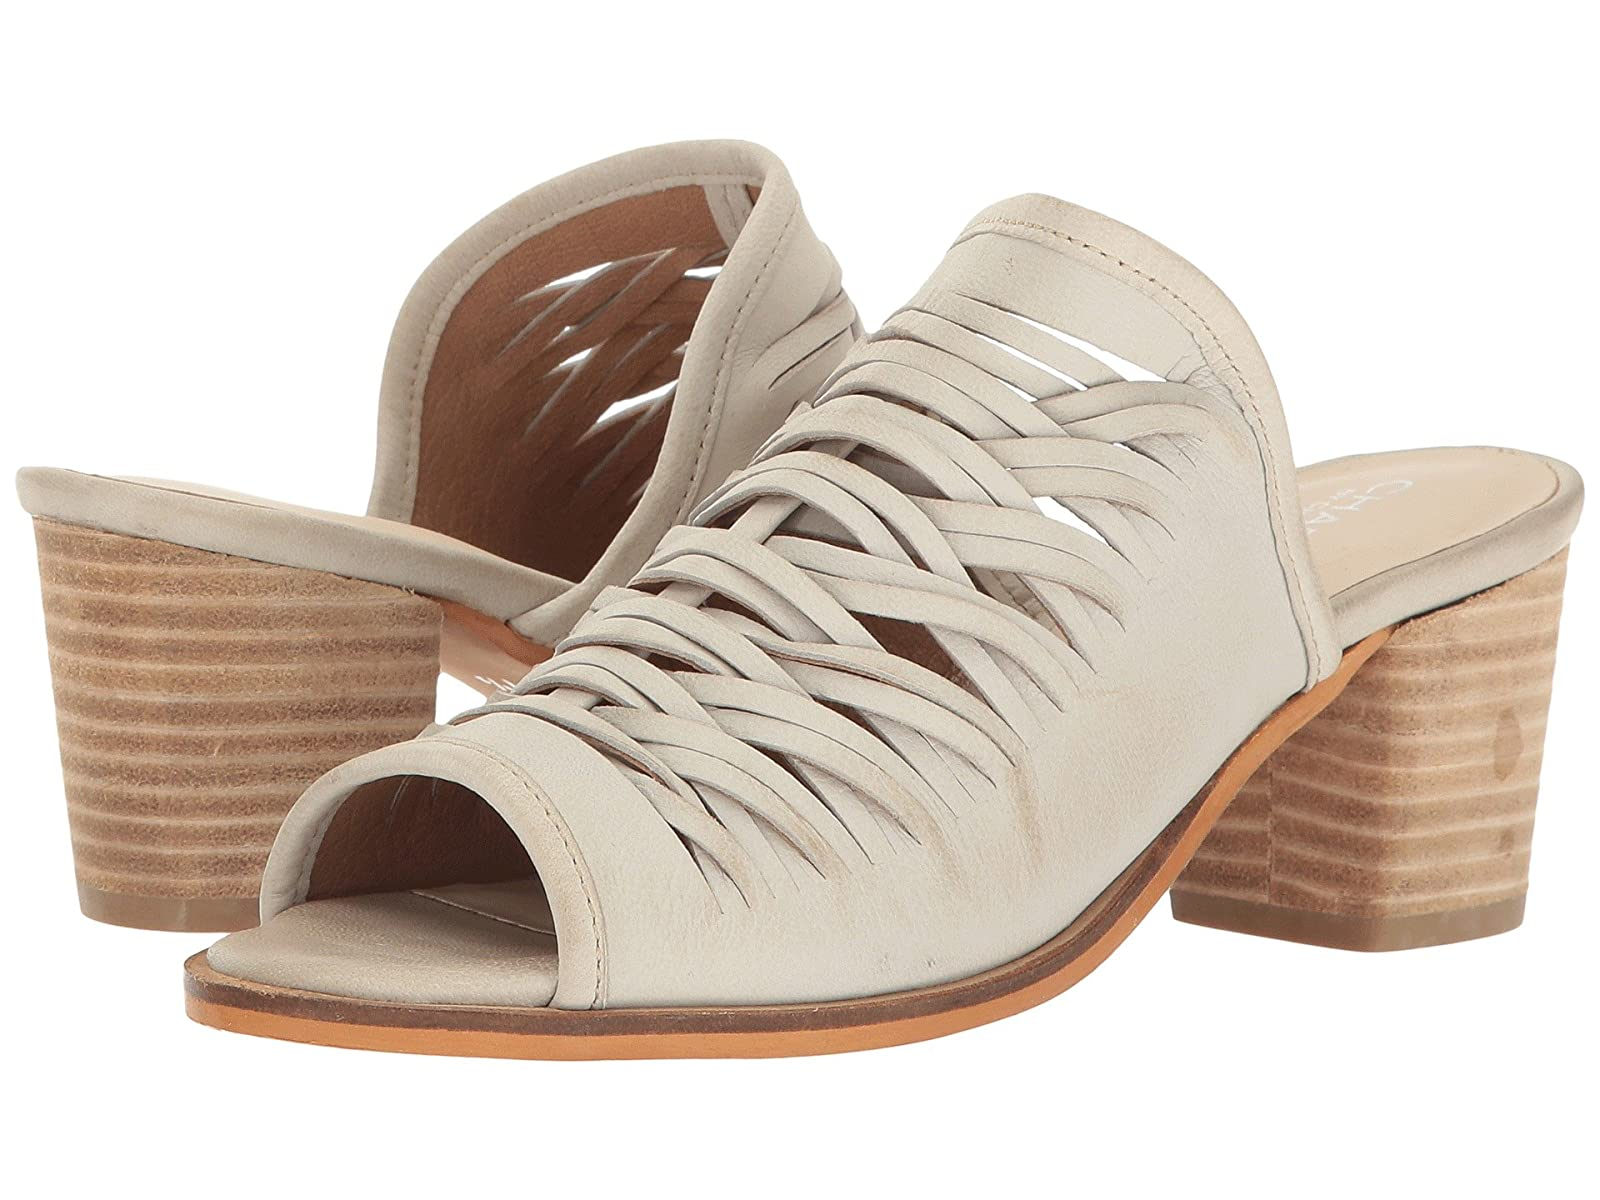 Charles by Charles David ChrisCheap and distinctive eye-catching shoes